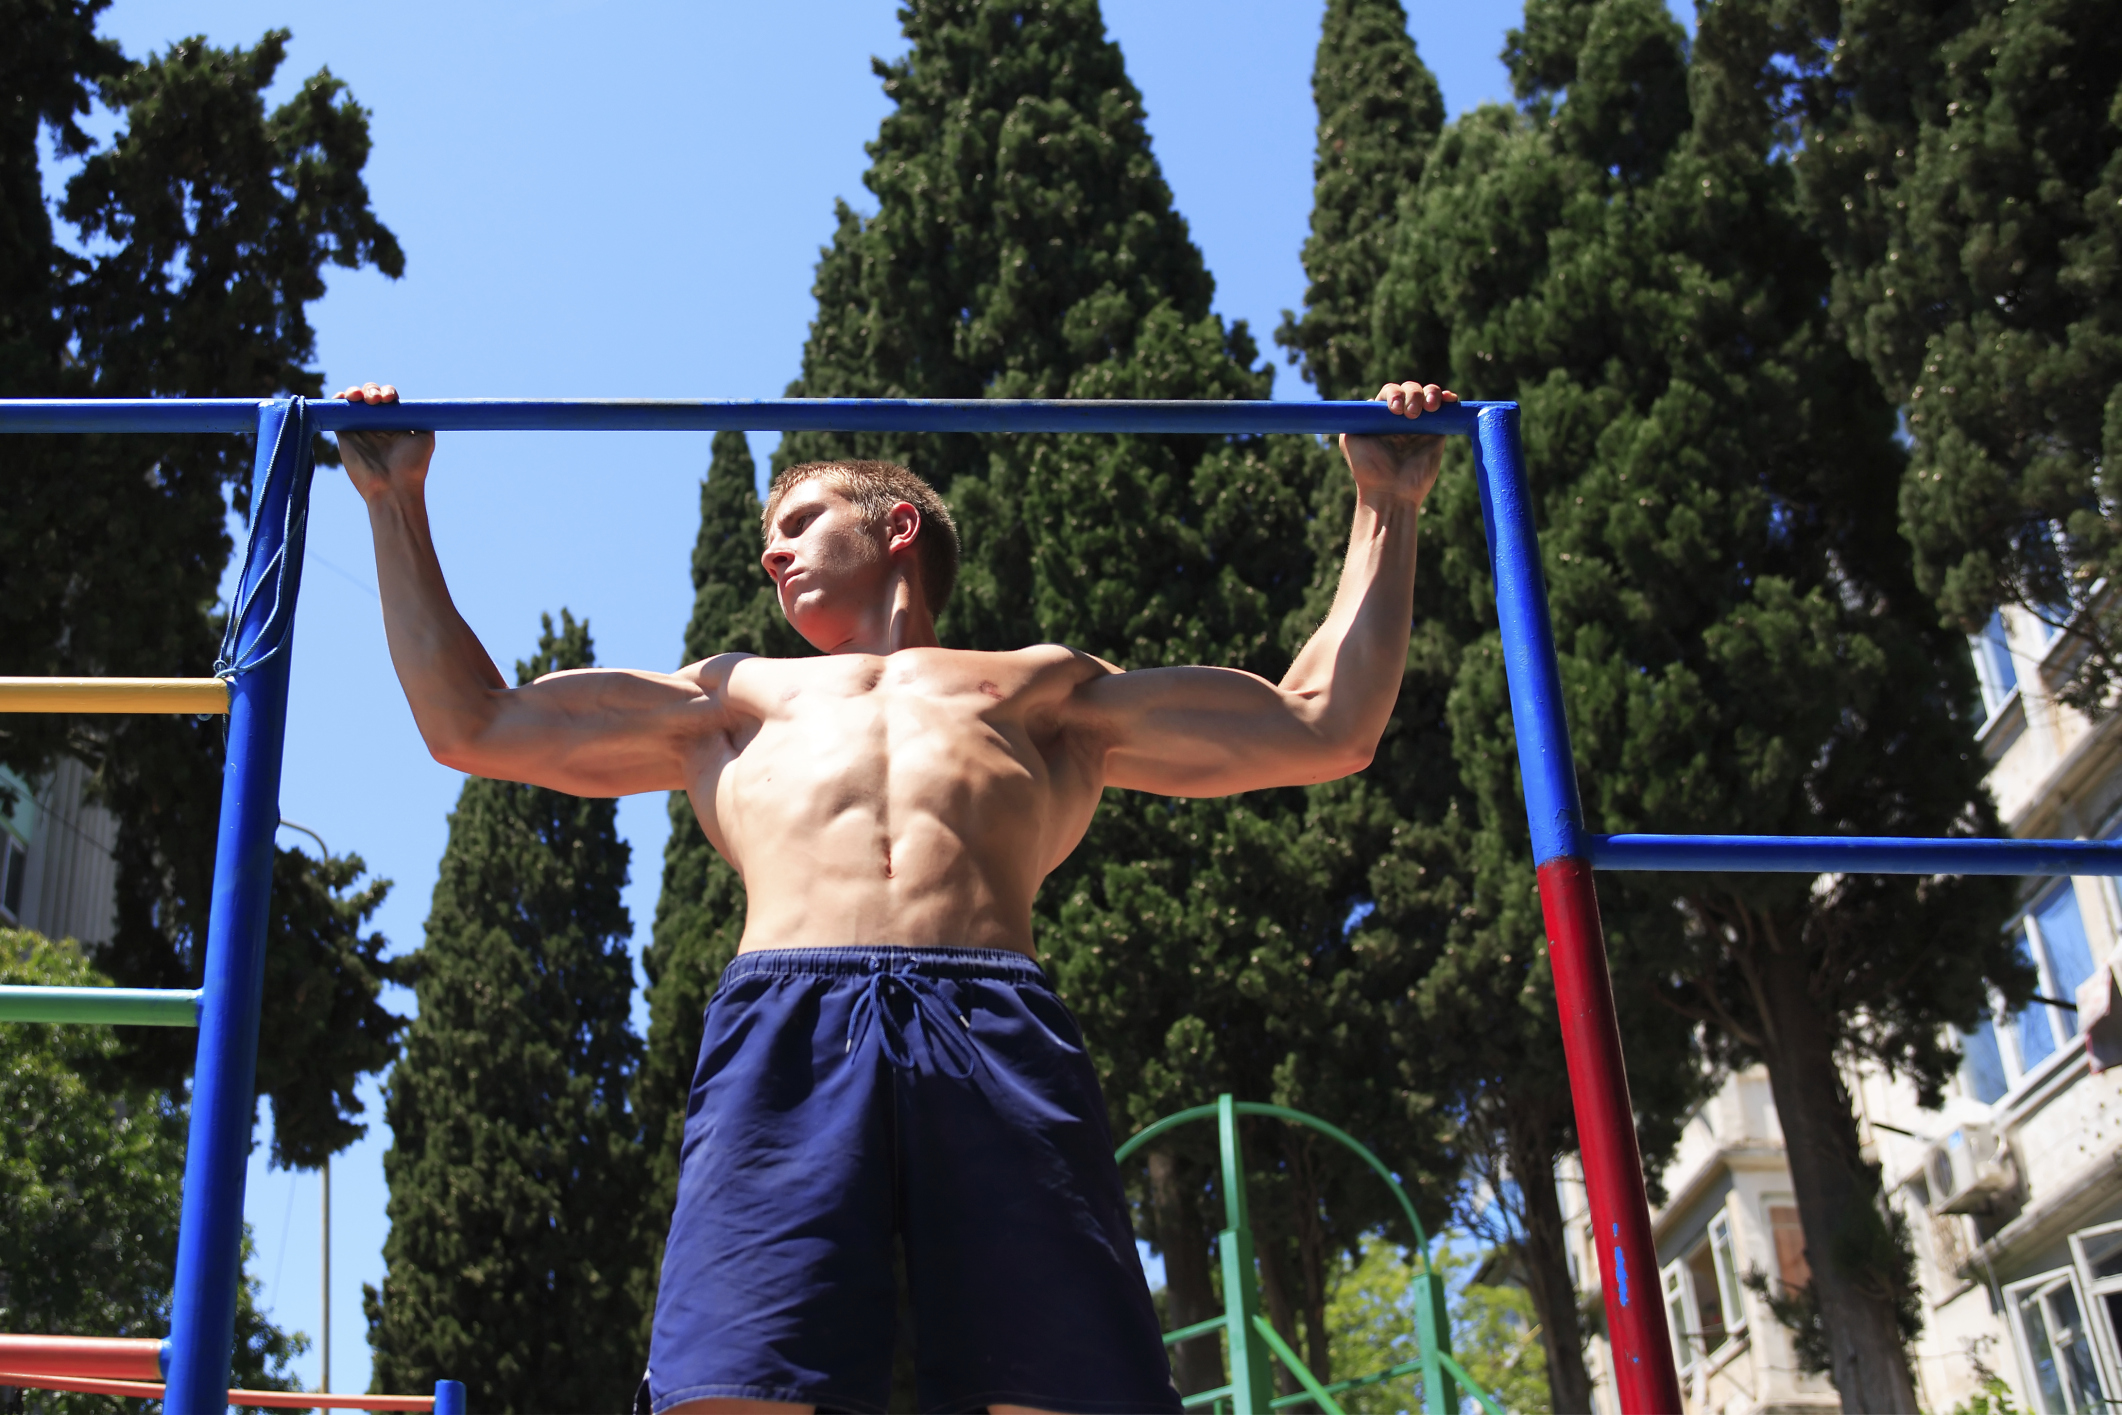 Negative pull-ups are a complicated exercise option